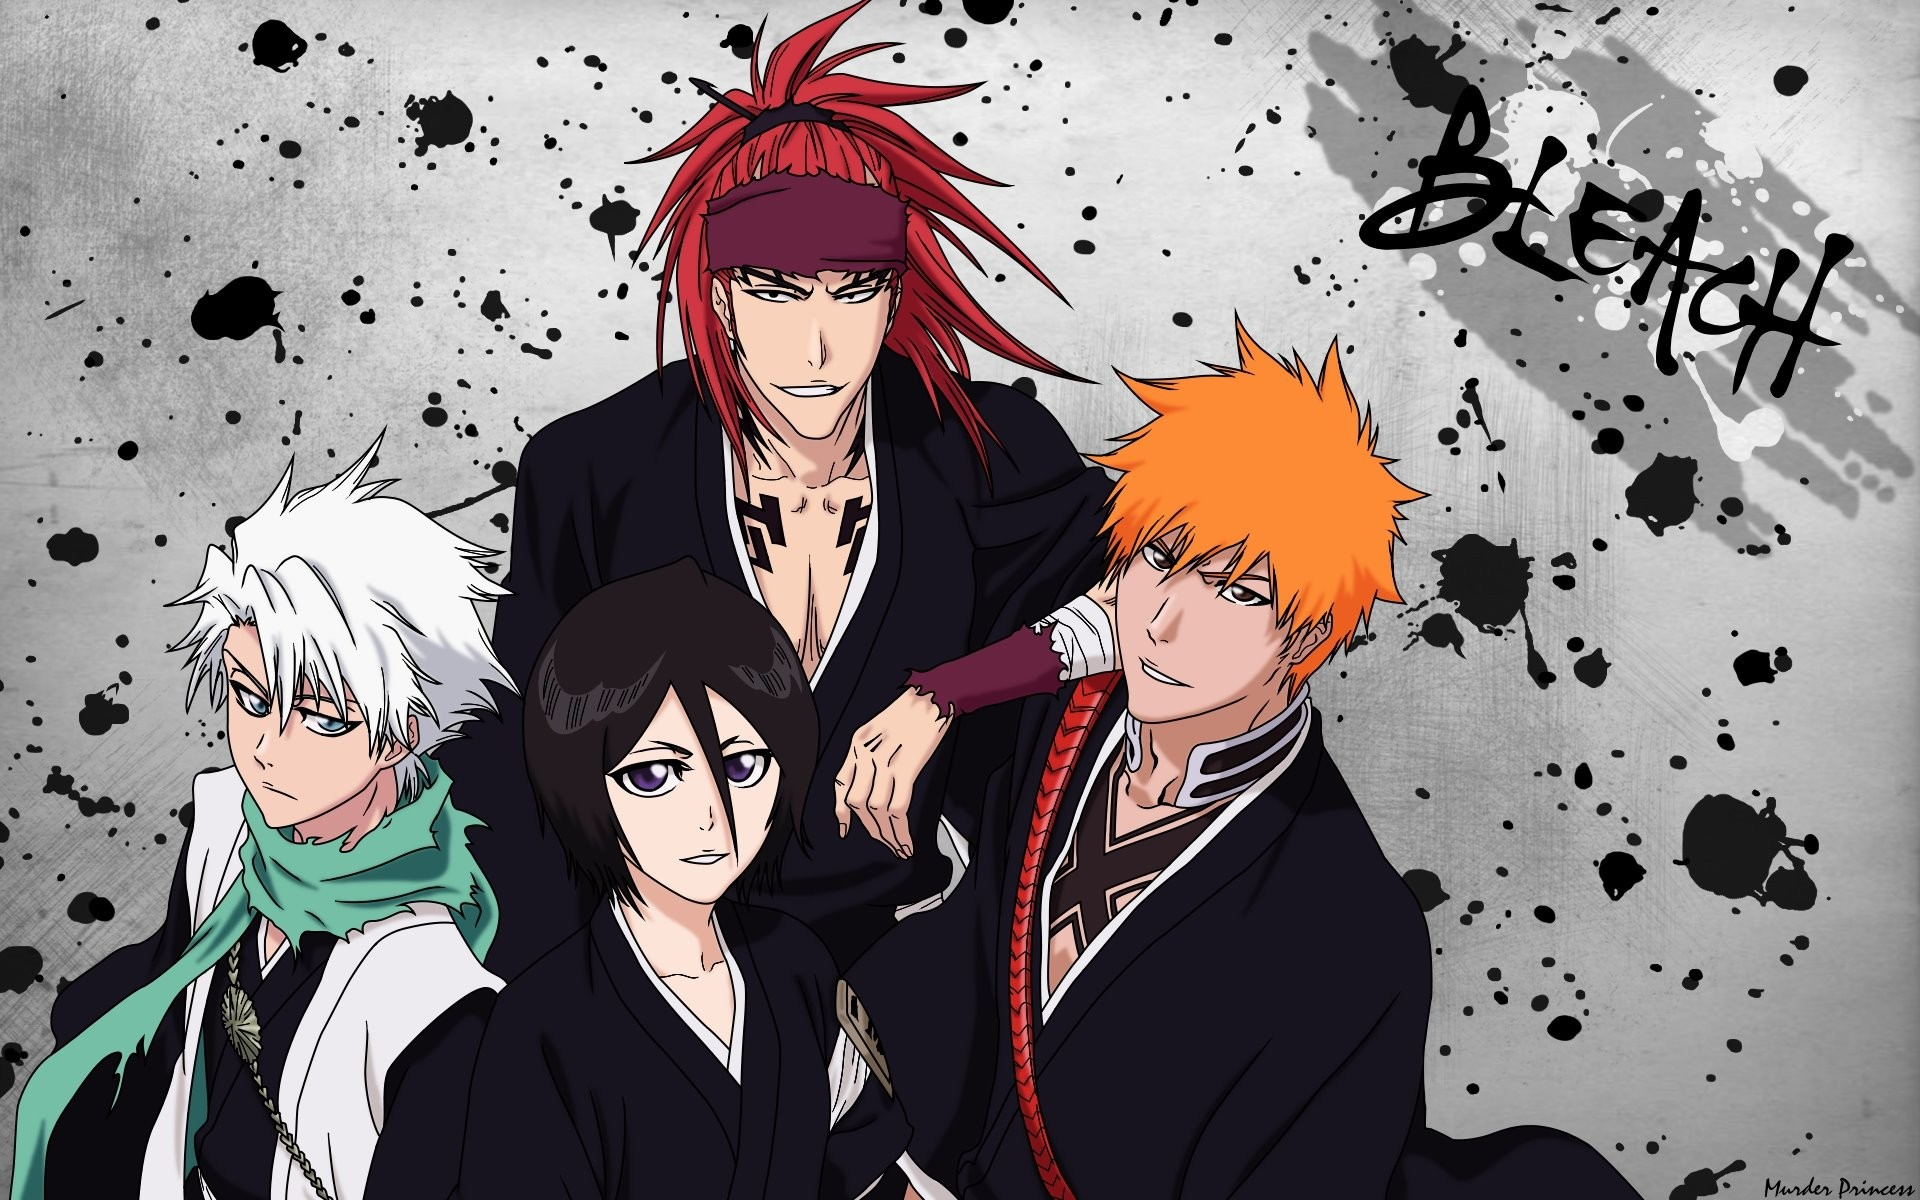 Bleach Anime Wallpaper Hd Bleach kurosak 1920x1200